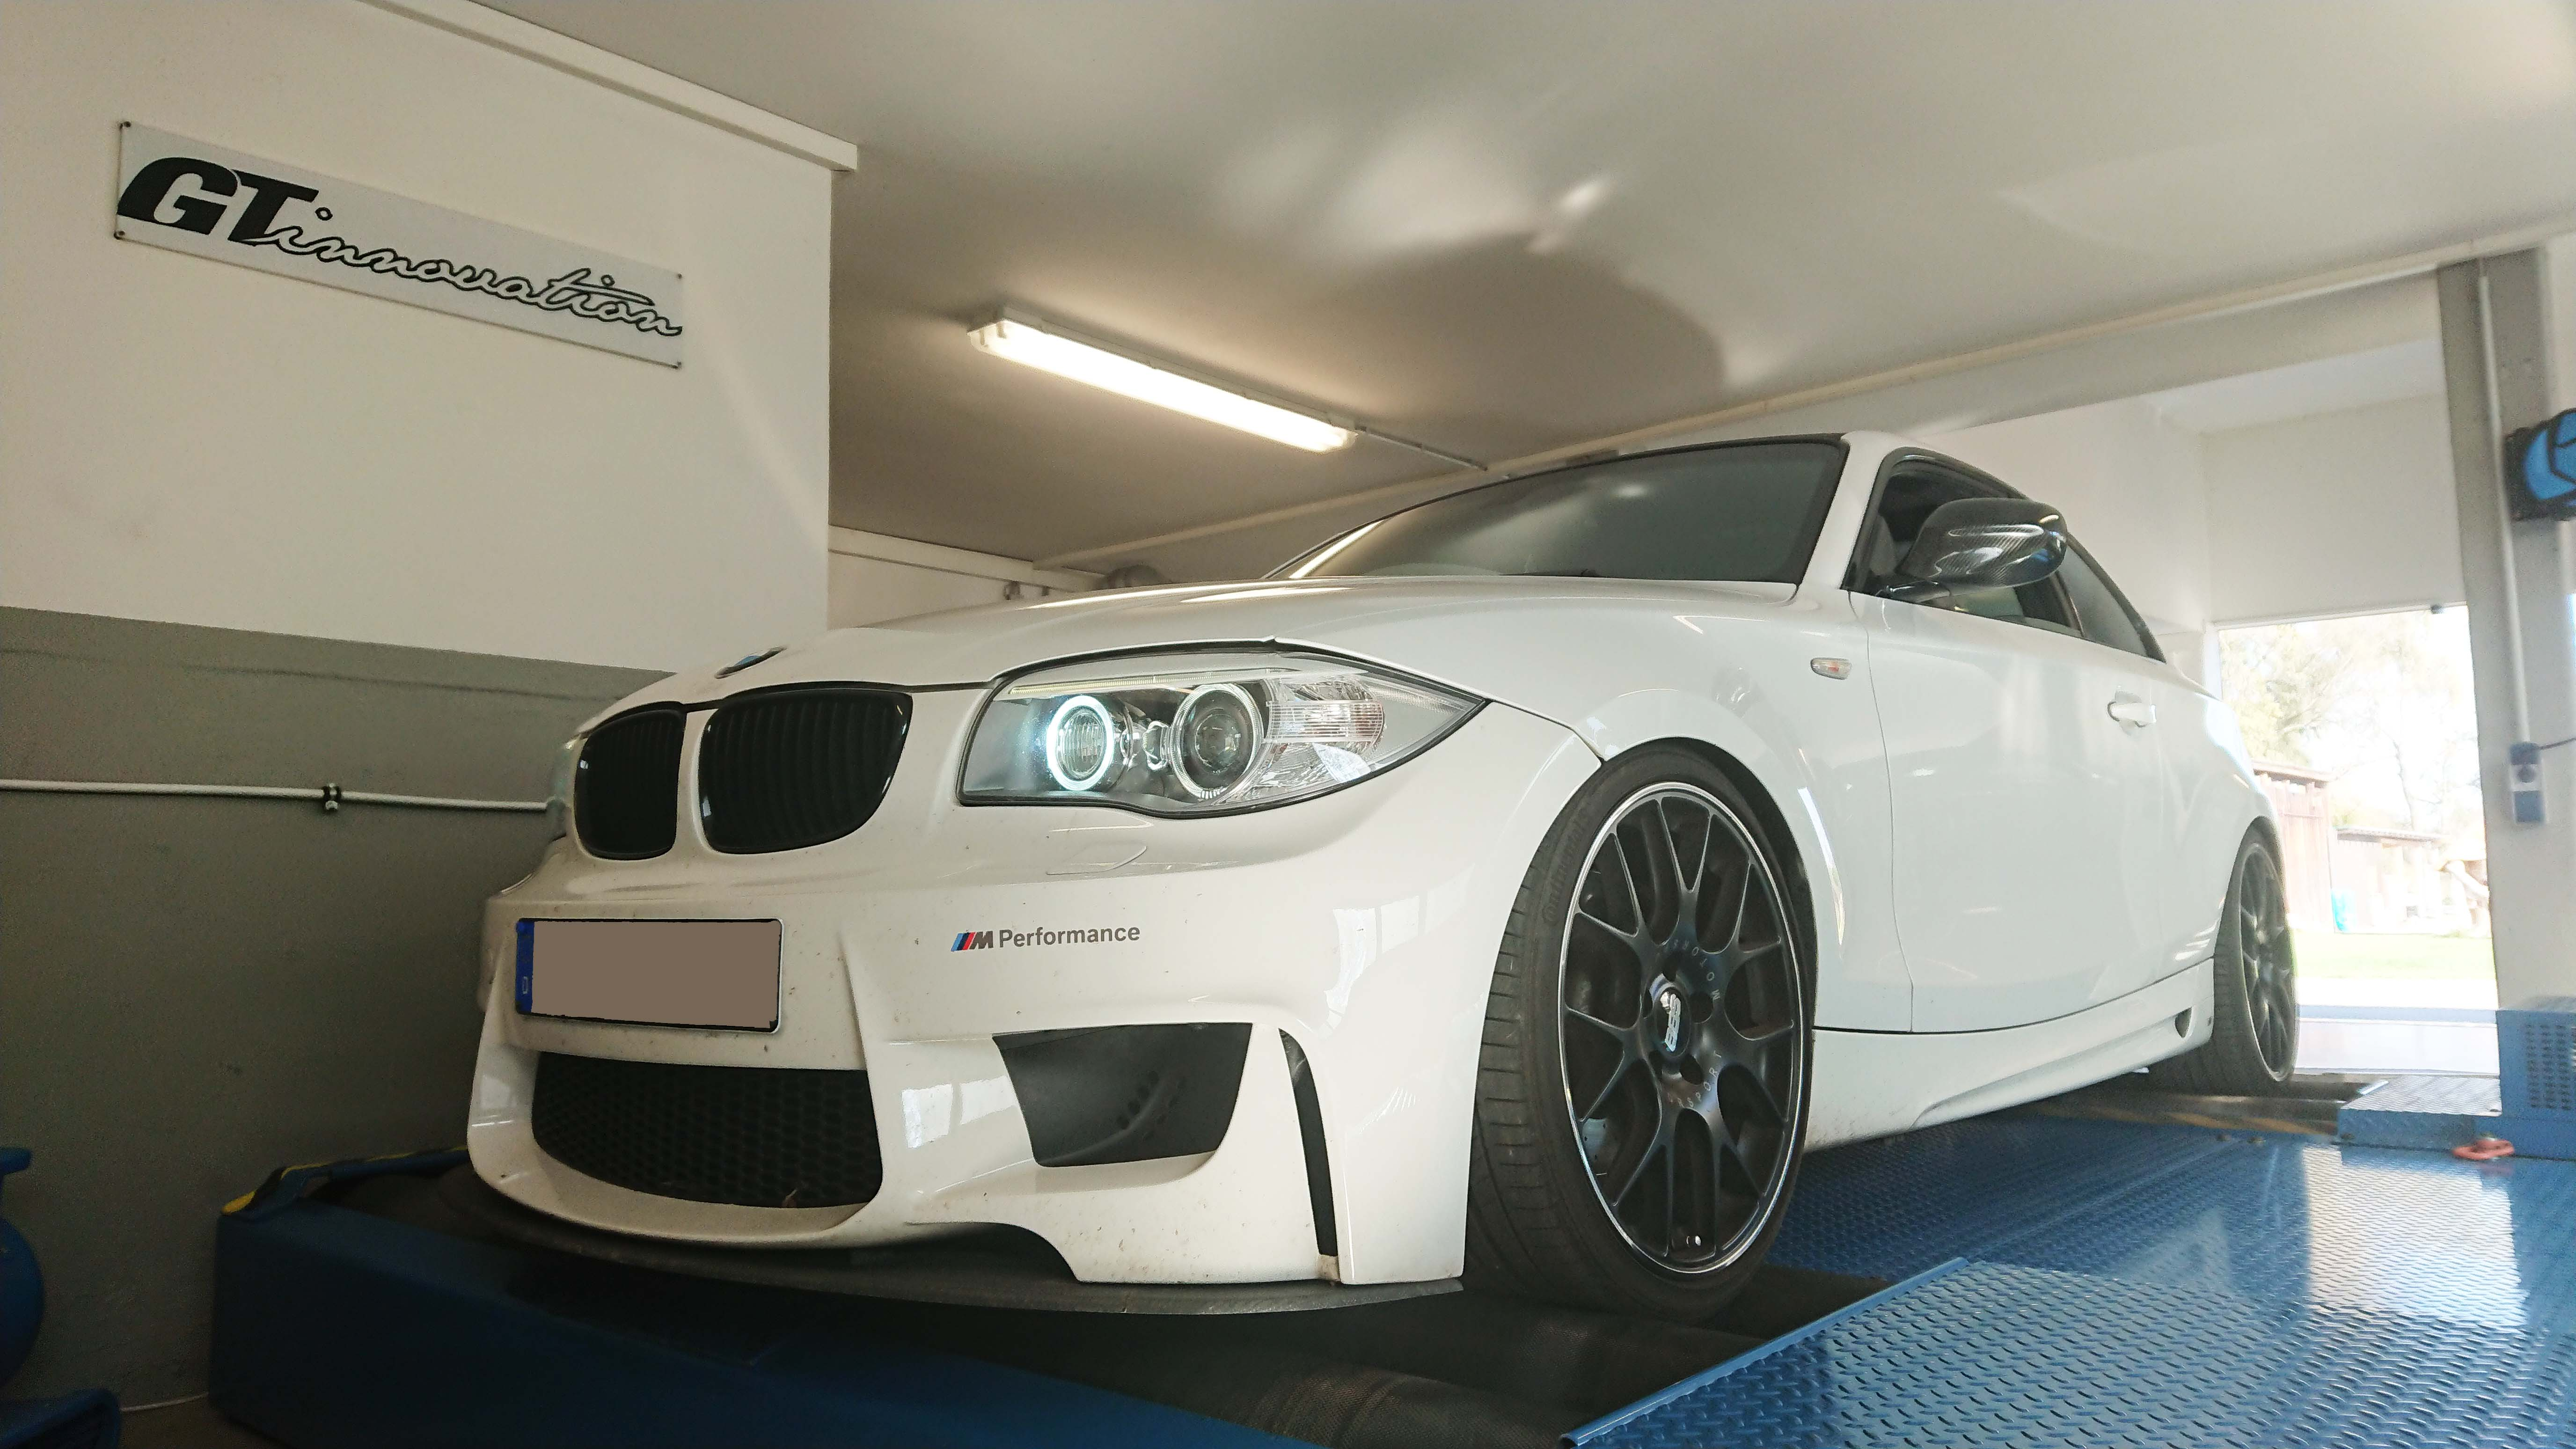 BMW M 135 N55 E82 405Ps 616nm stage 2 — GT-innovation